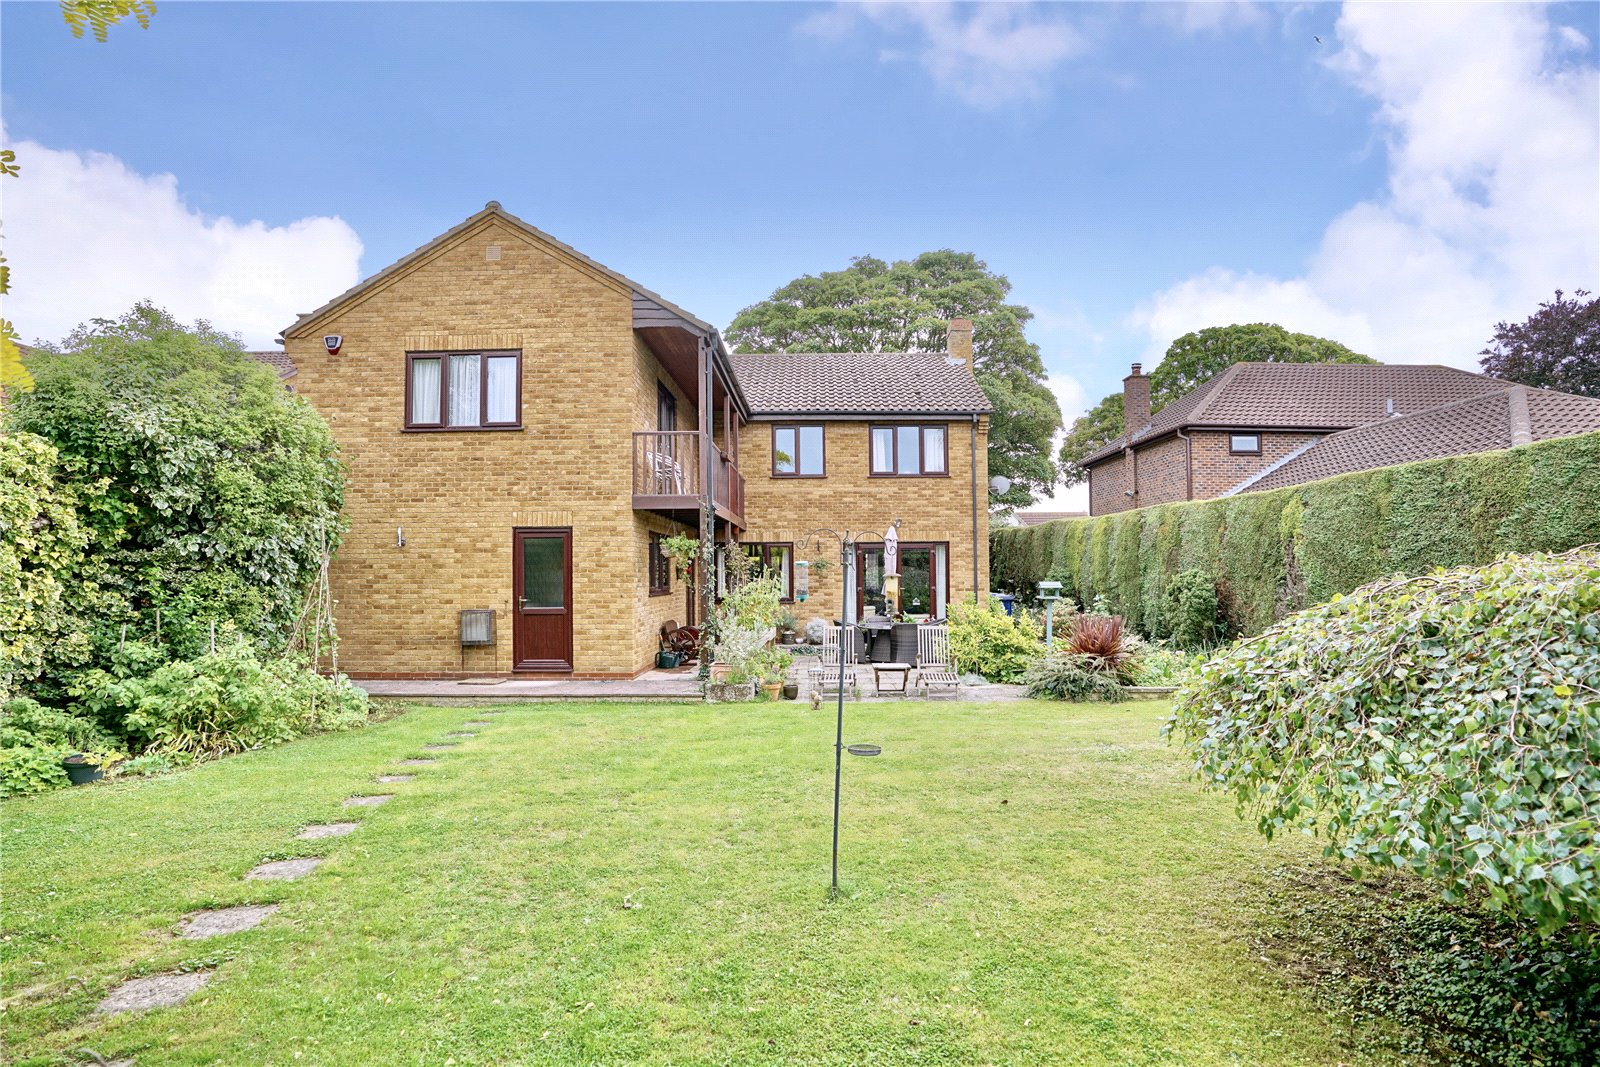 5 bed house for sale in Great North Road, Eaton Ford 18